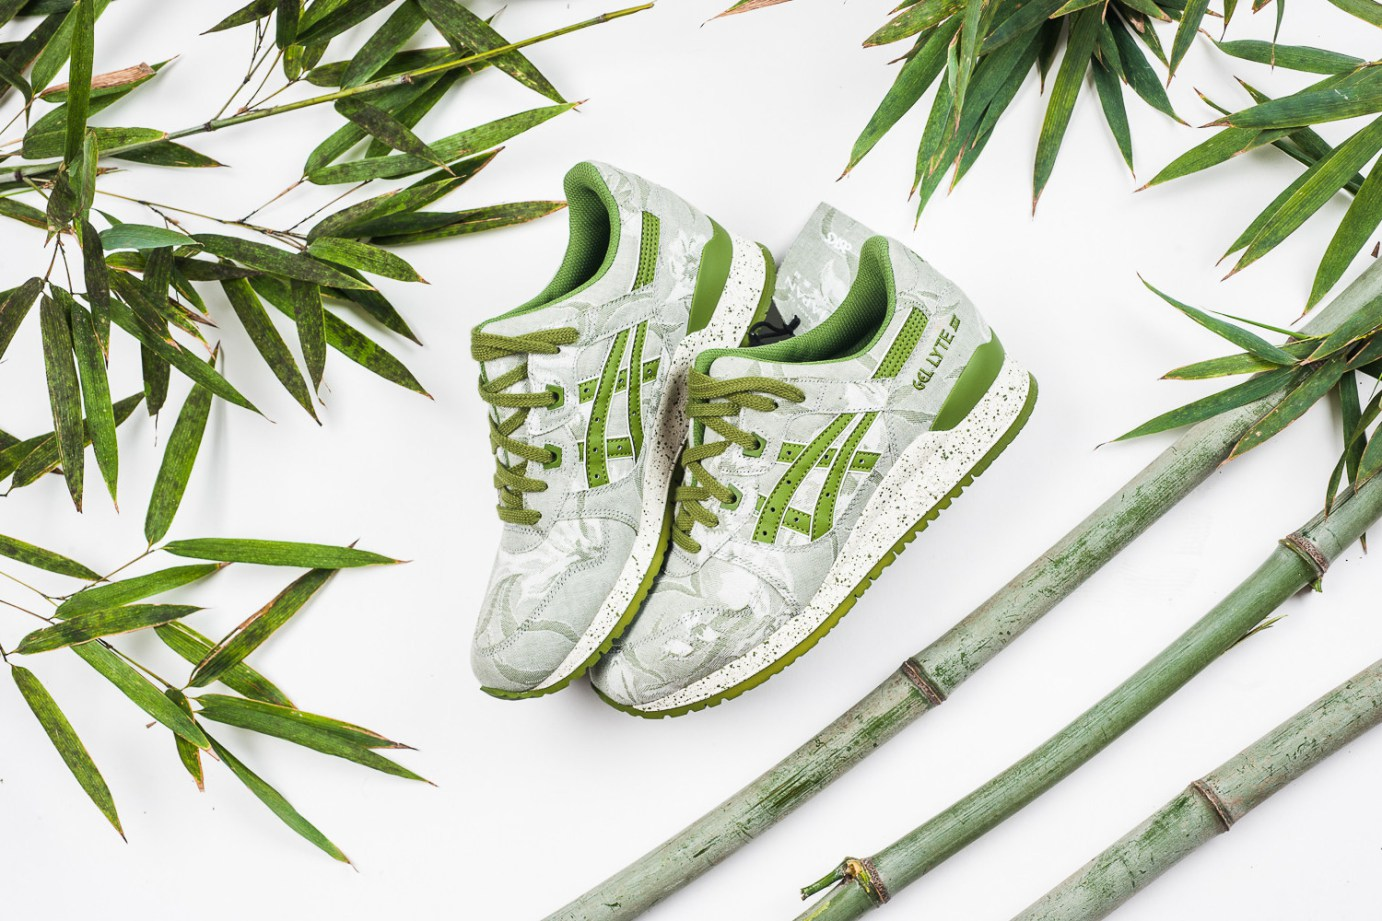 Asics expands the 'Japanese Textile' range